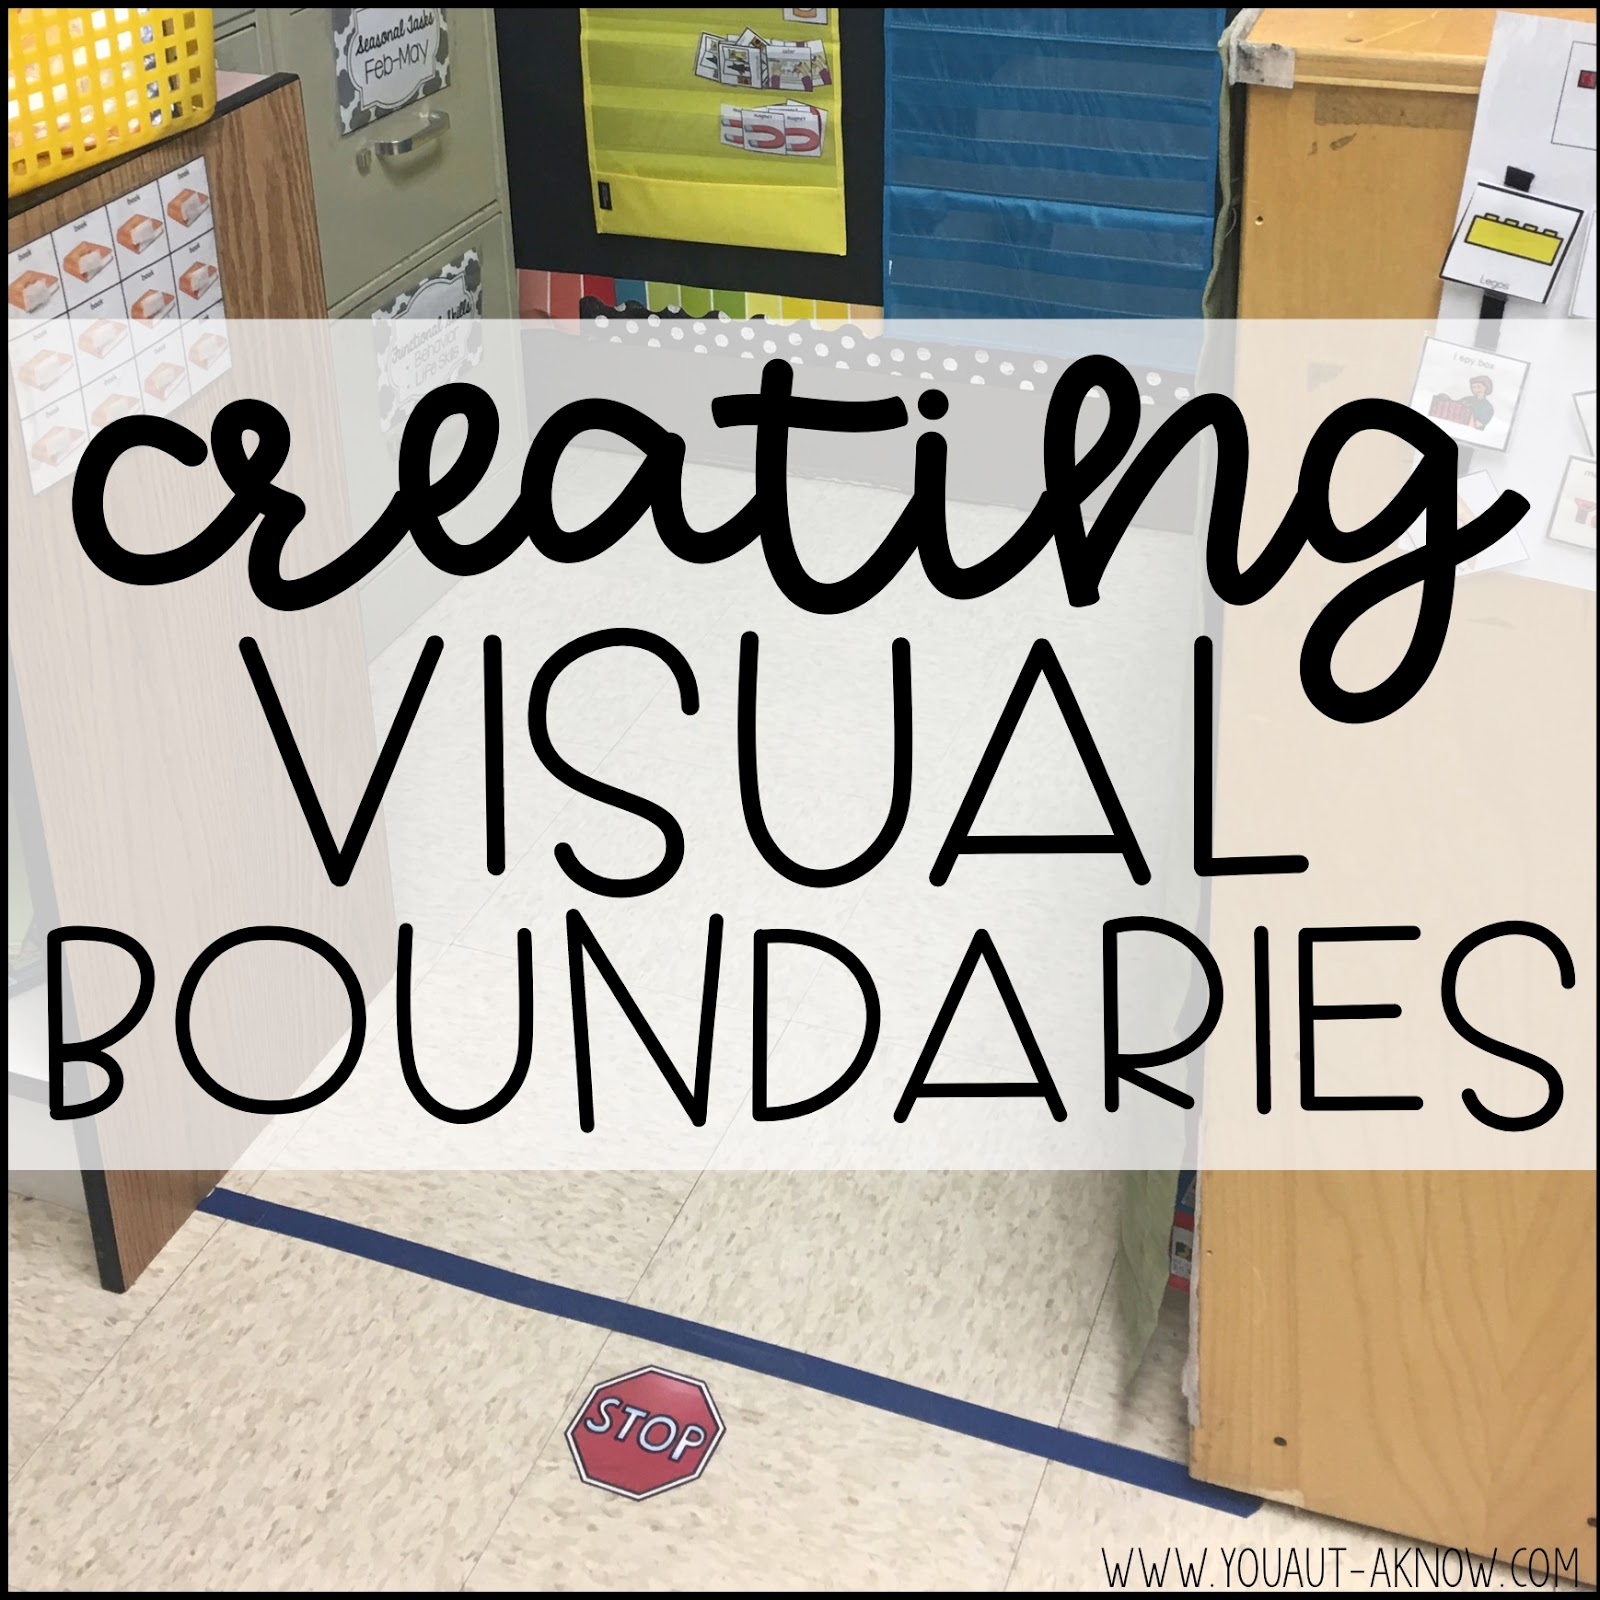 Do you have students who struggle to stay in designed spaces in the classroom? Check out how I create visual boundaries and implement a teaching strategy to help the students in my Autism classroom.